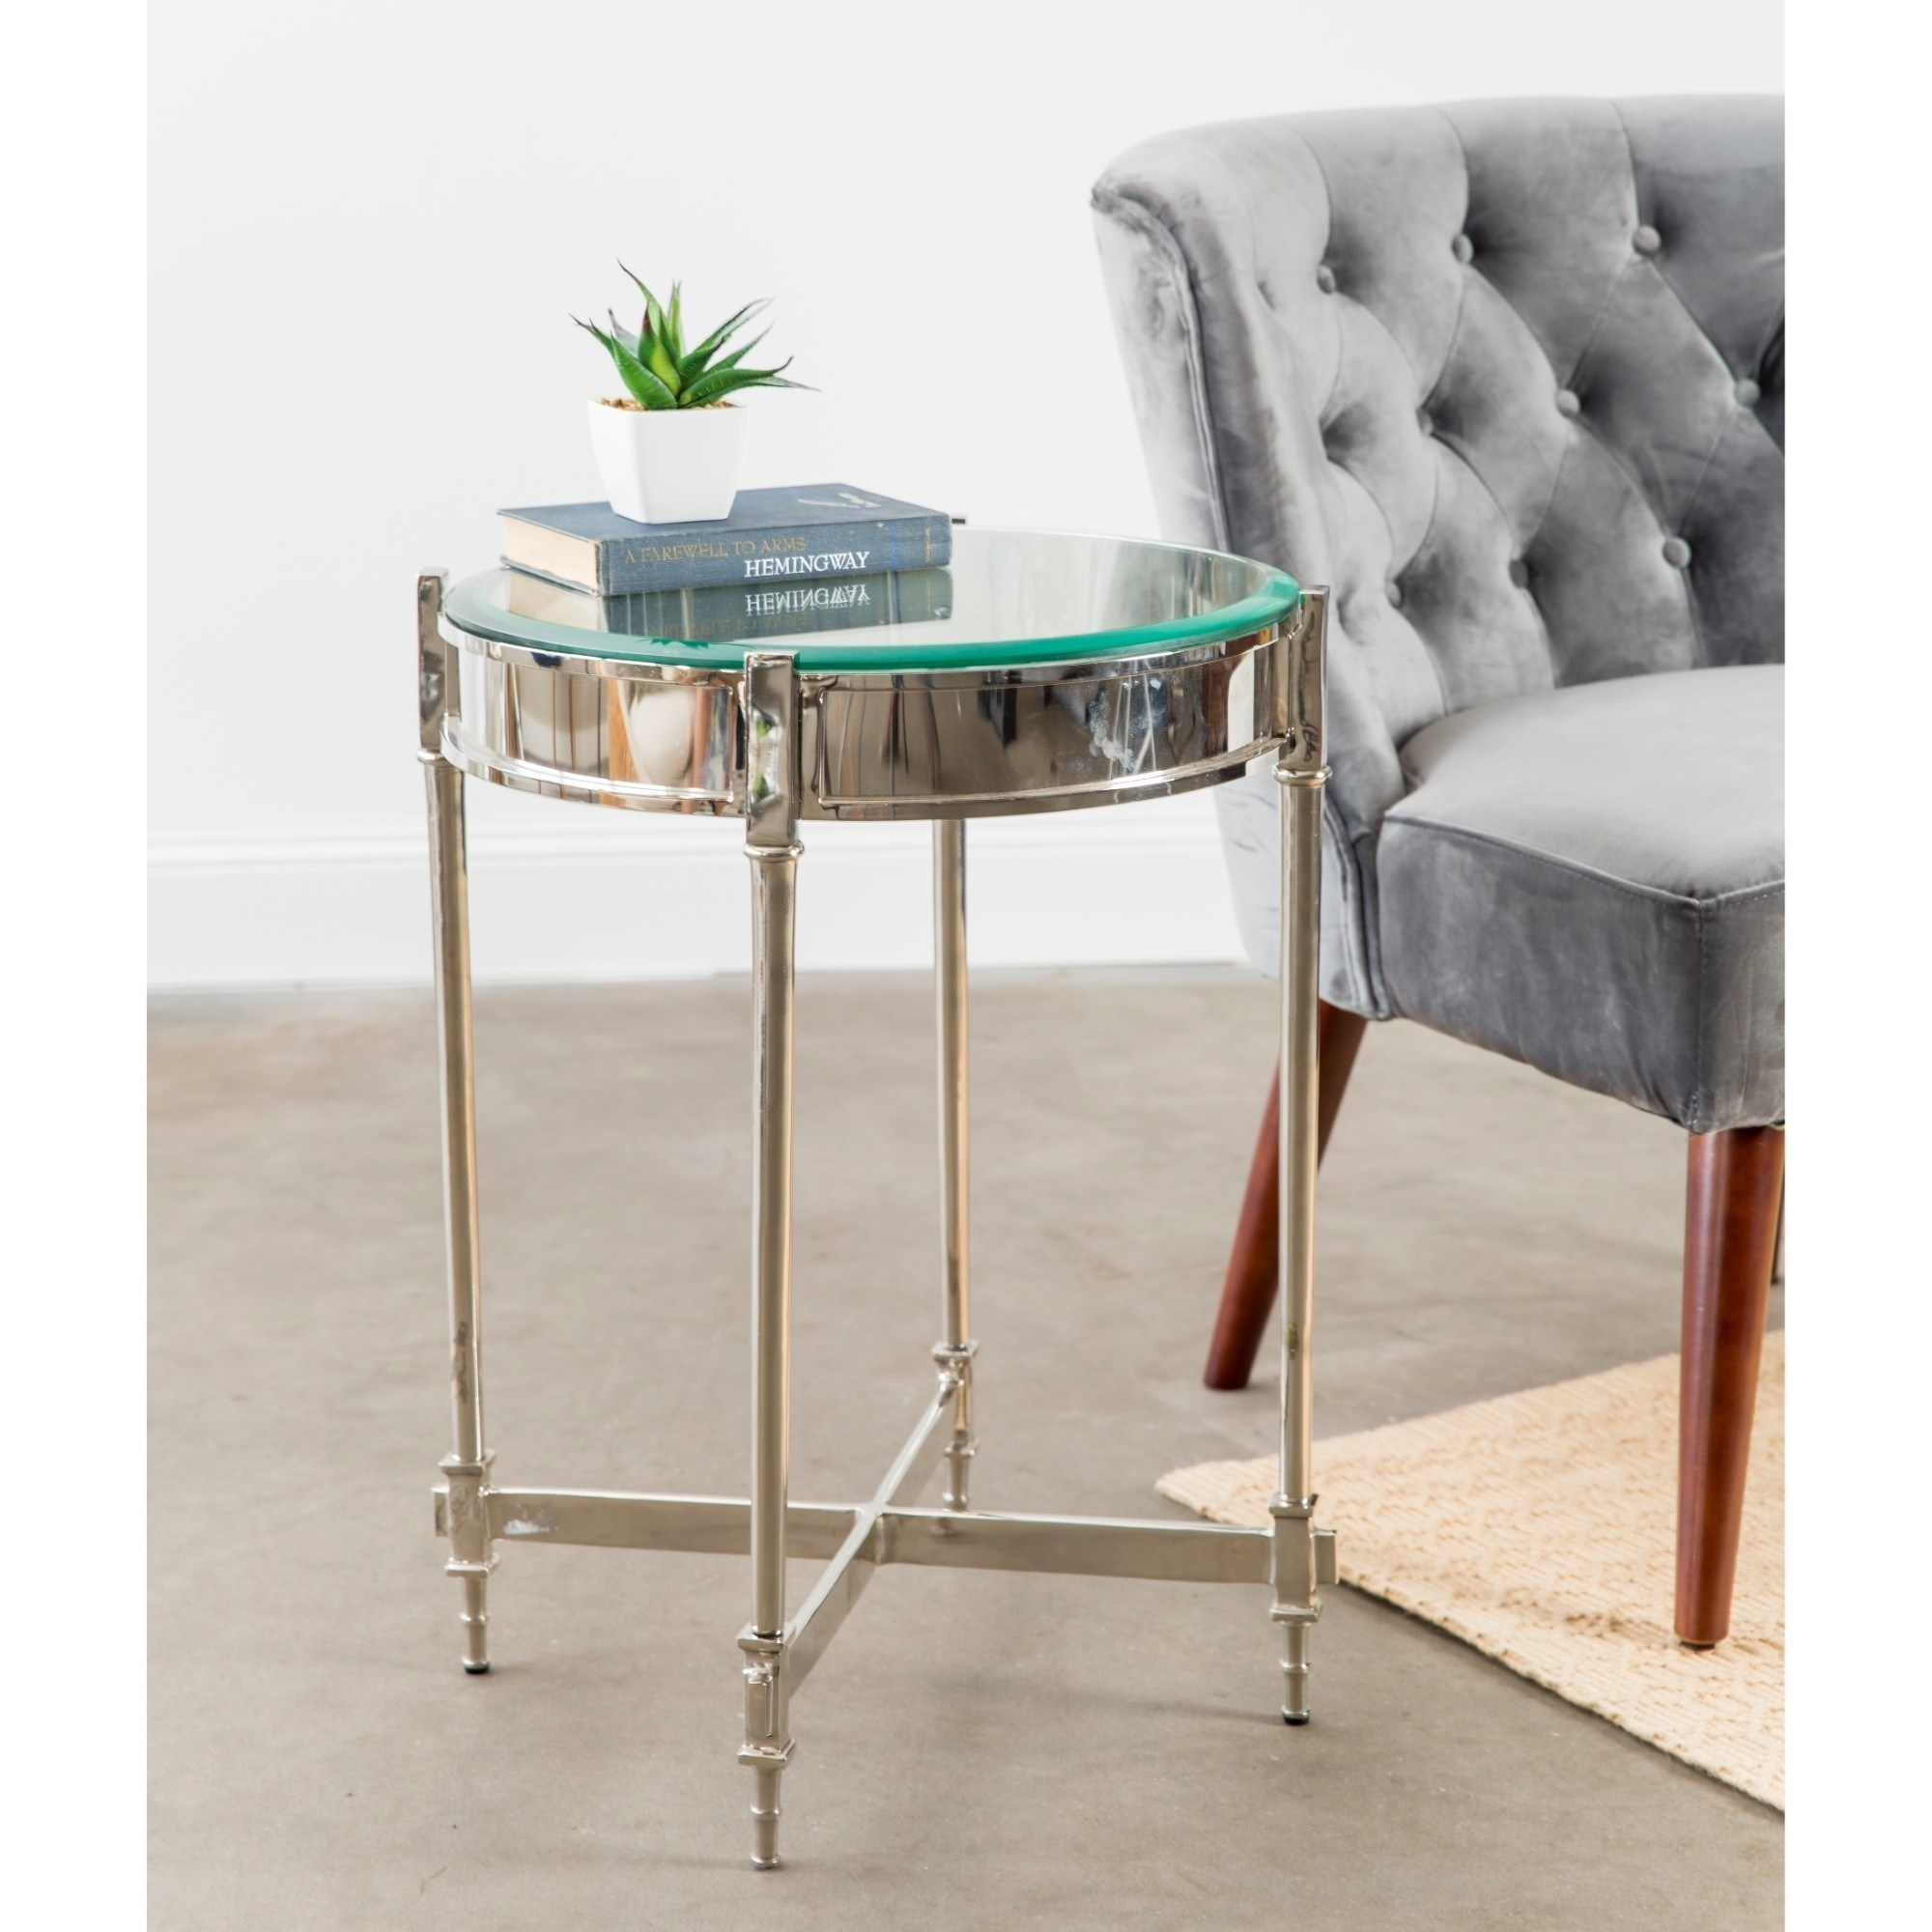 knox harrison nickel finish aluminum end table with beveled glass accent top uttermost tables piece coffee set cordless bedside lights shabby chic fur furniture slim couch black